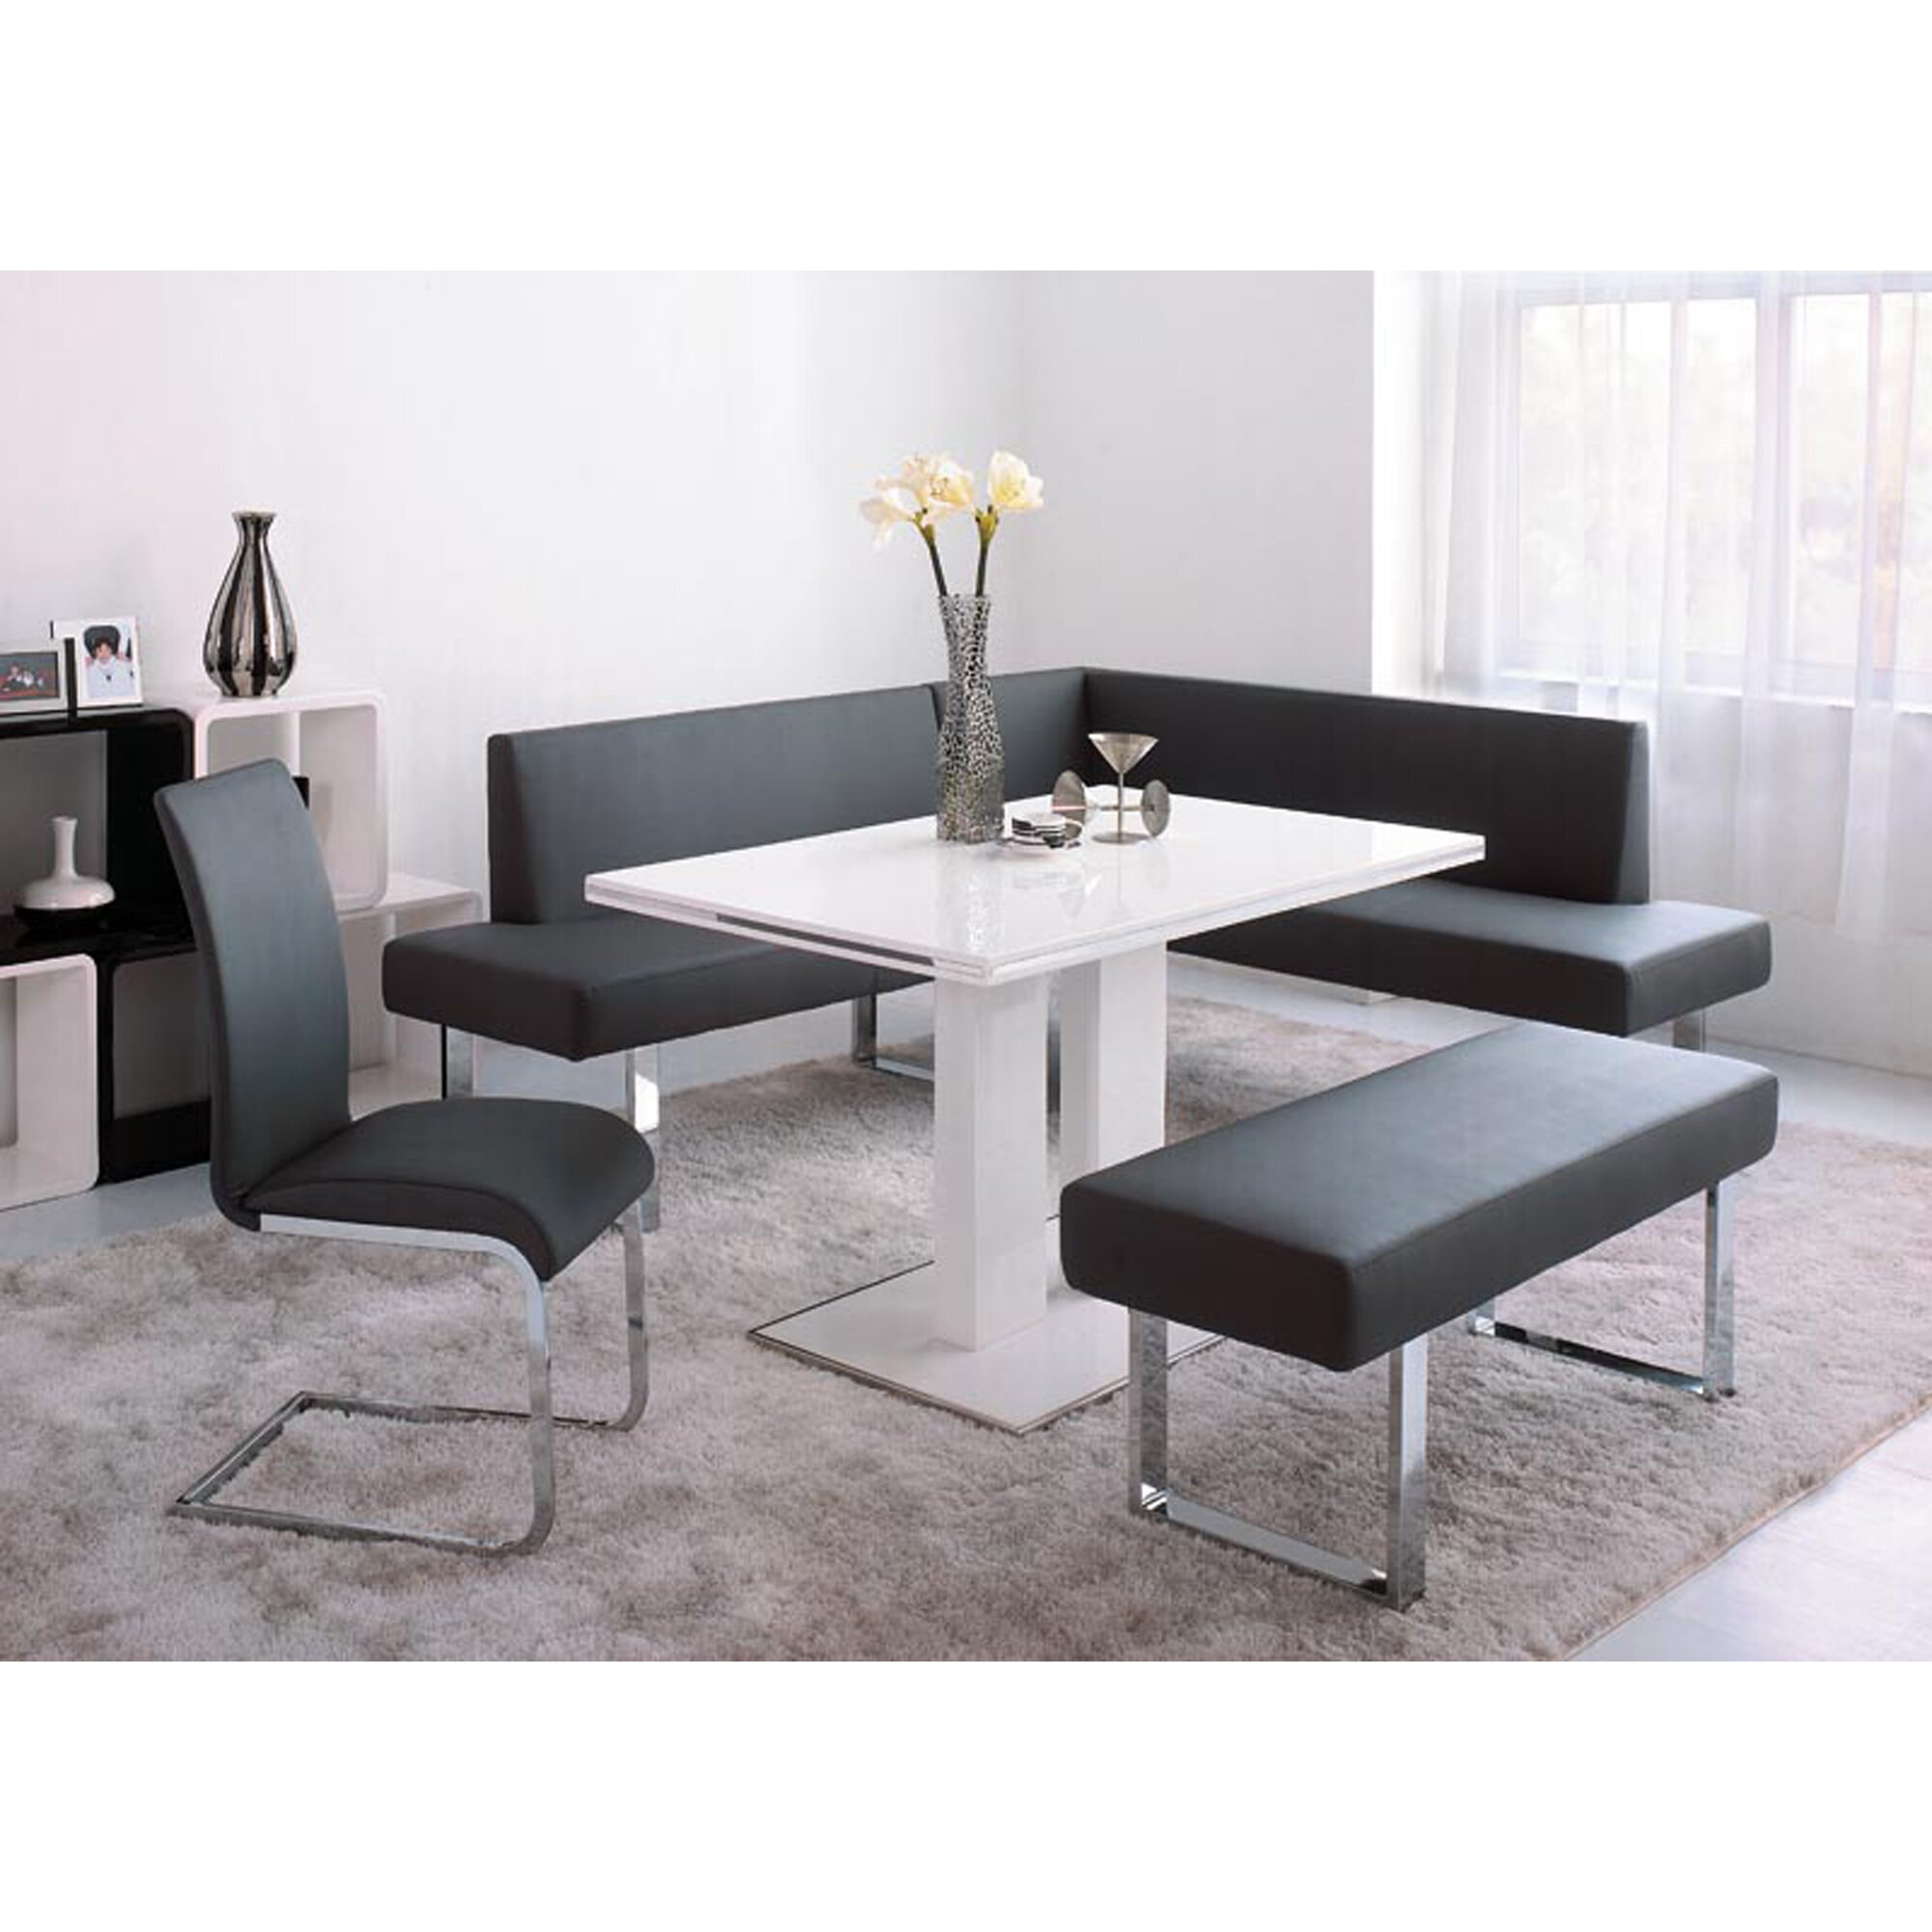 Wade Logan Robb 4 Piece Dining Set & Reviews | Wayfair